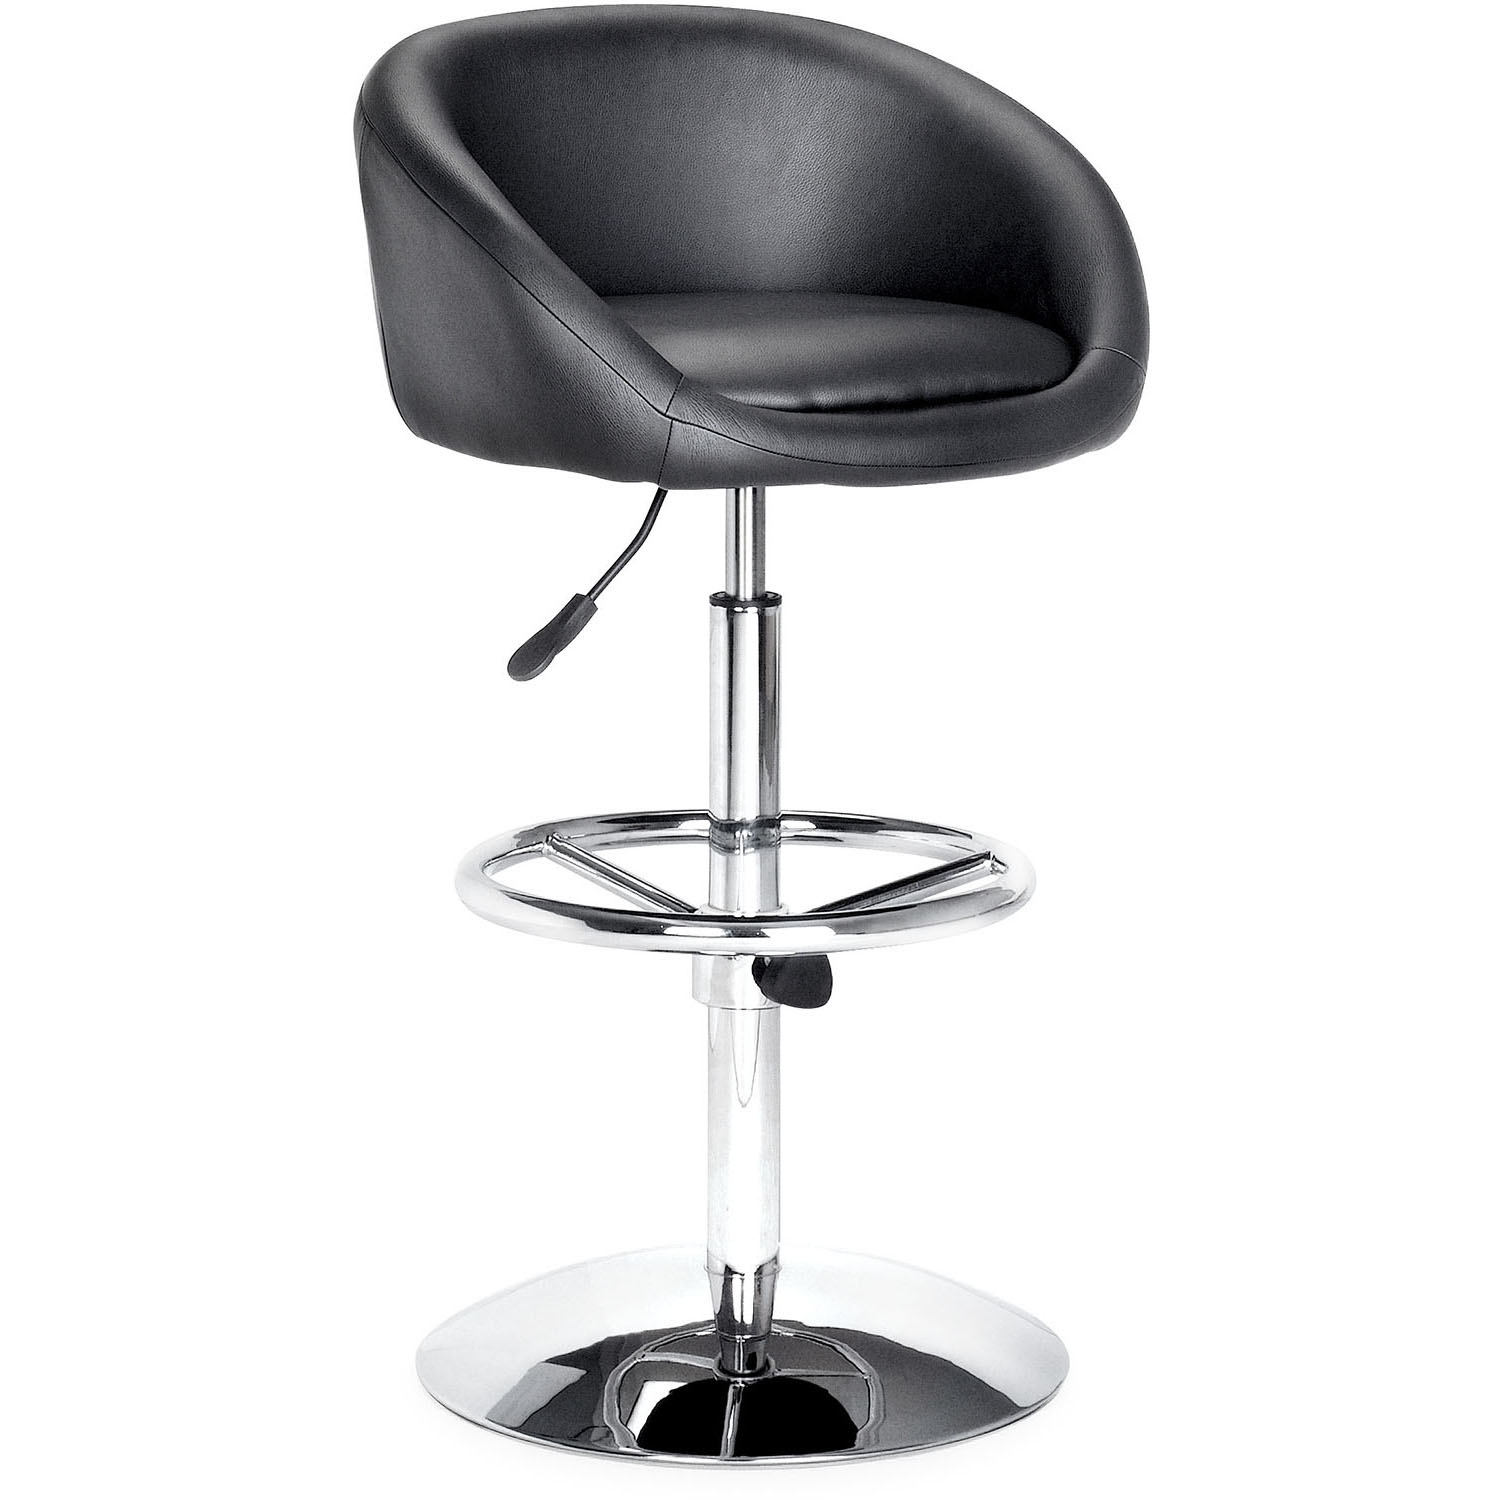 Superb Concerto Adjustable Height Footrest Swivel Bar Chair Product Photo